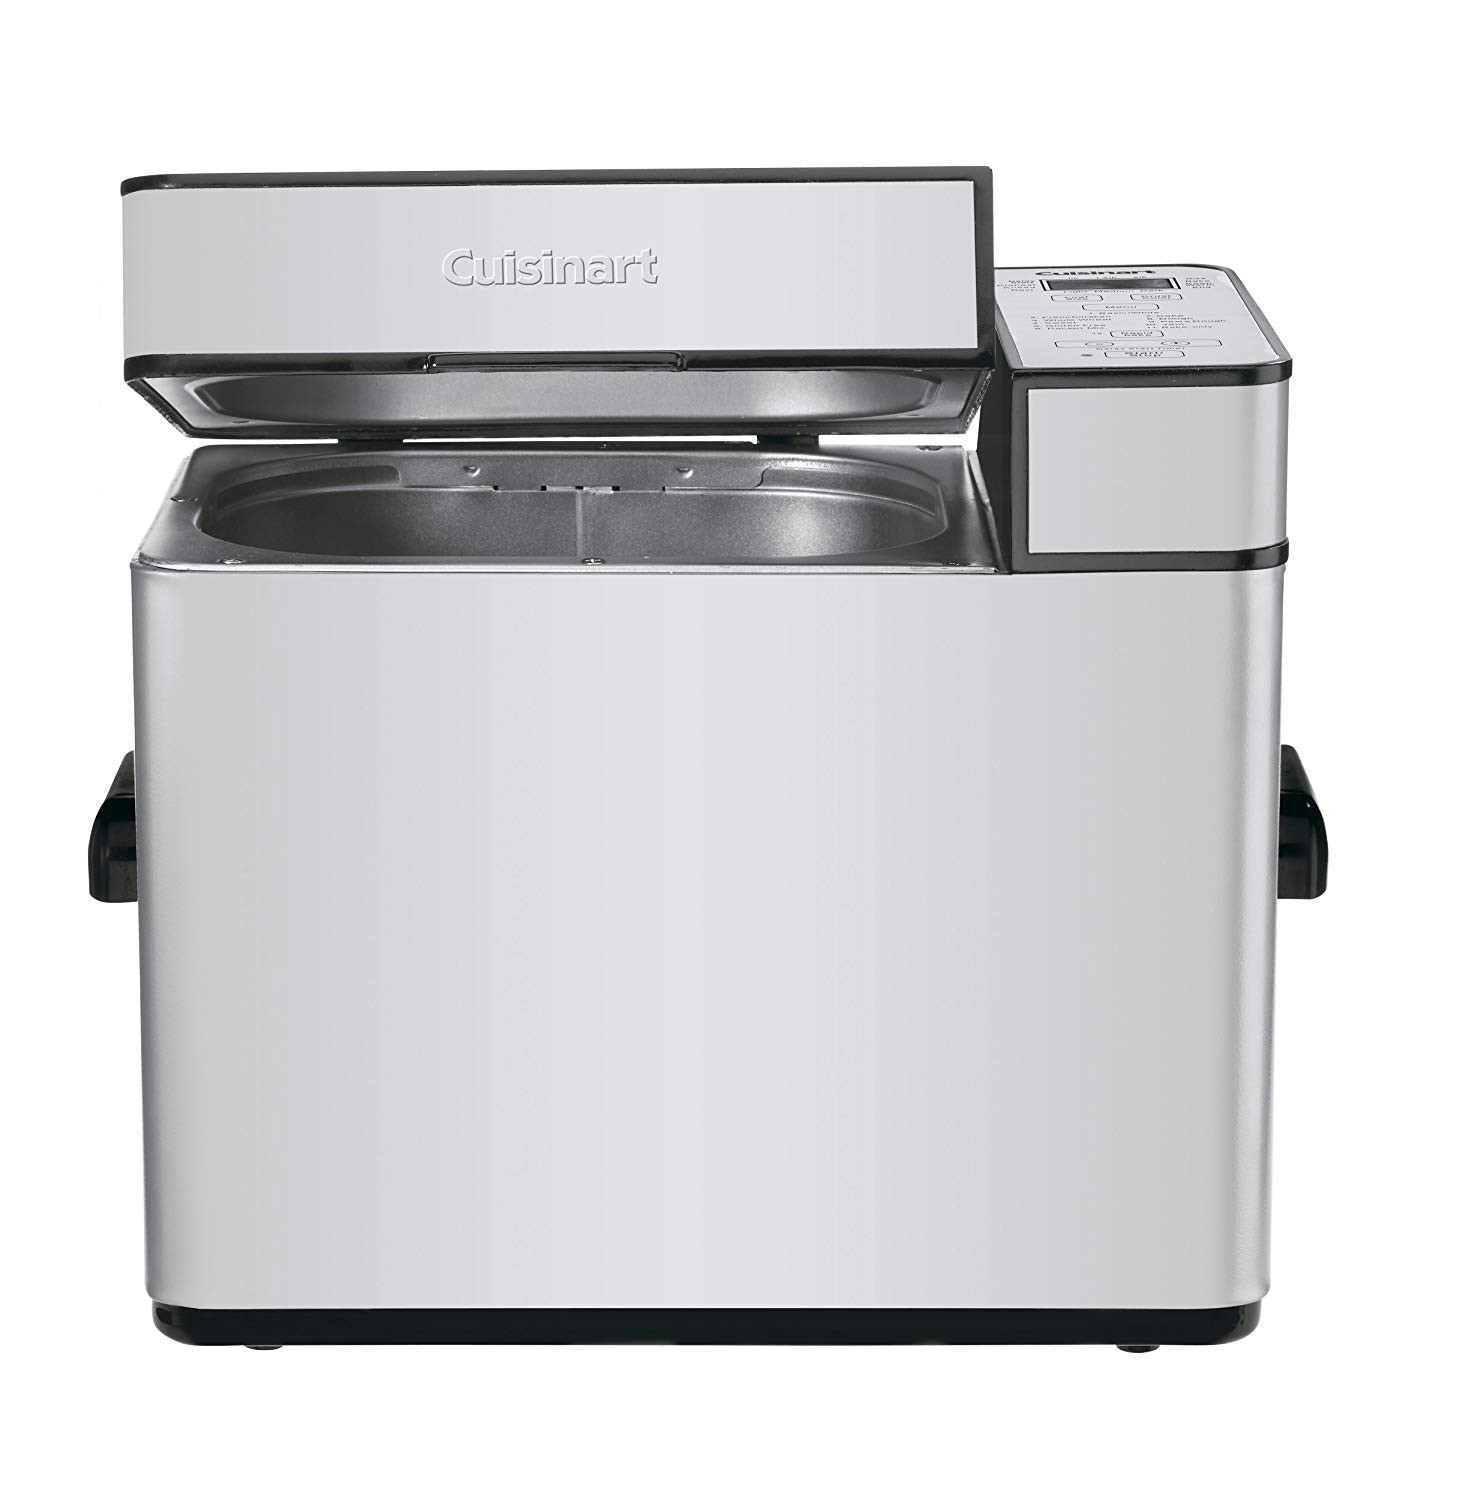 24 Best Cuisinart Bread Machine Recipes - Best Round Up Recipe Collections